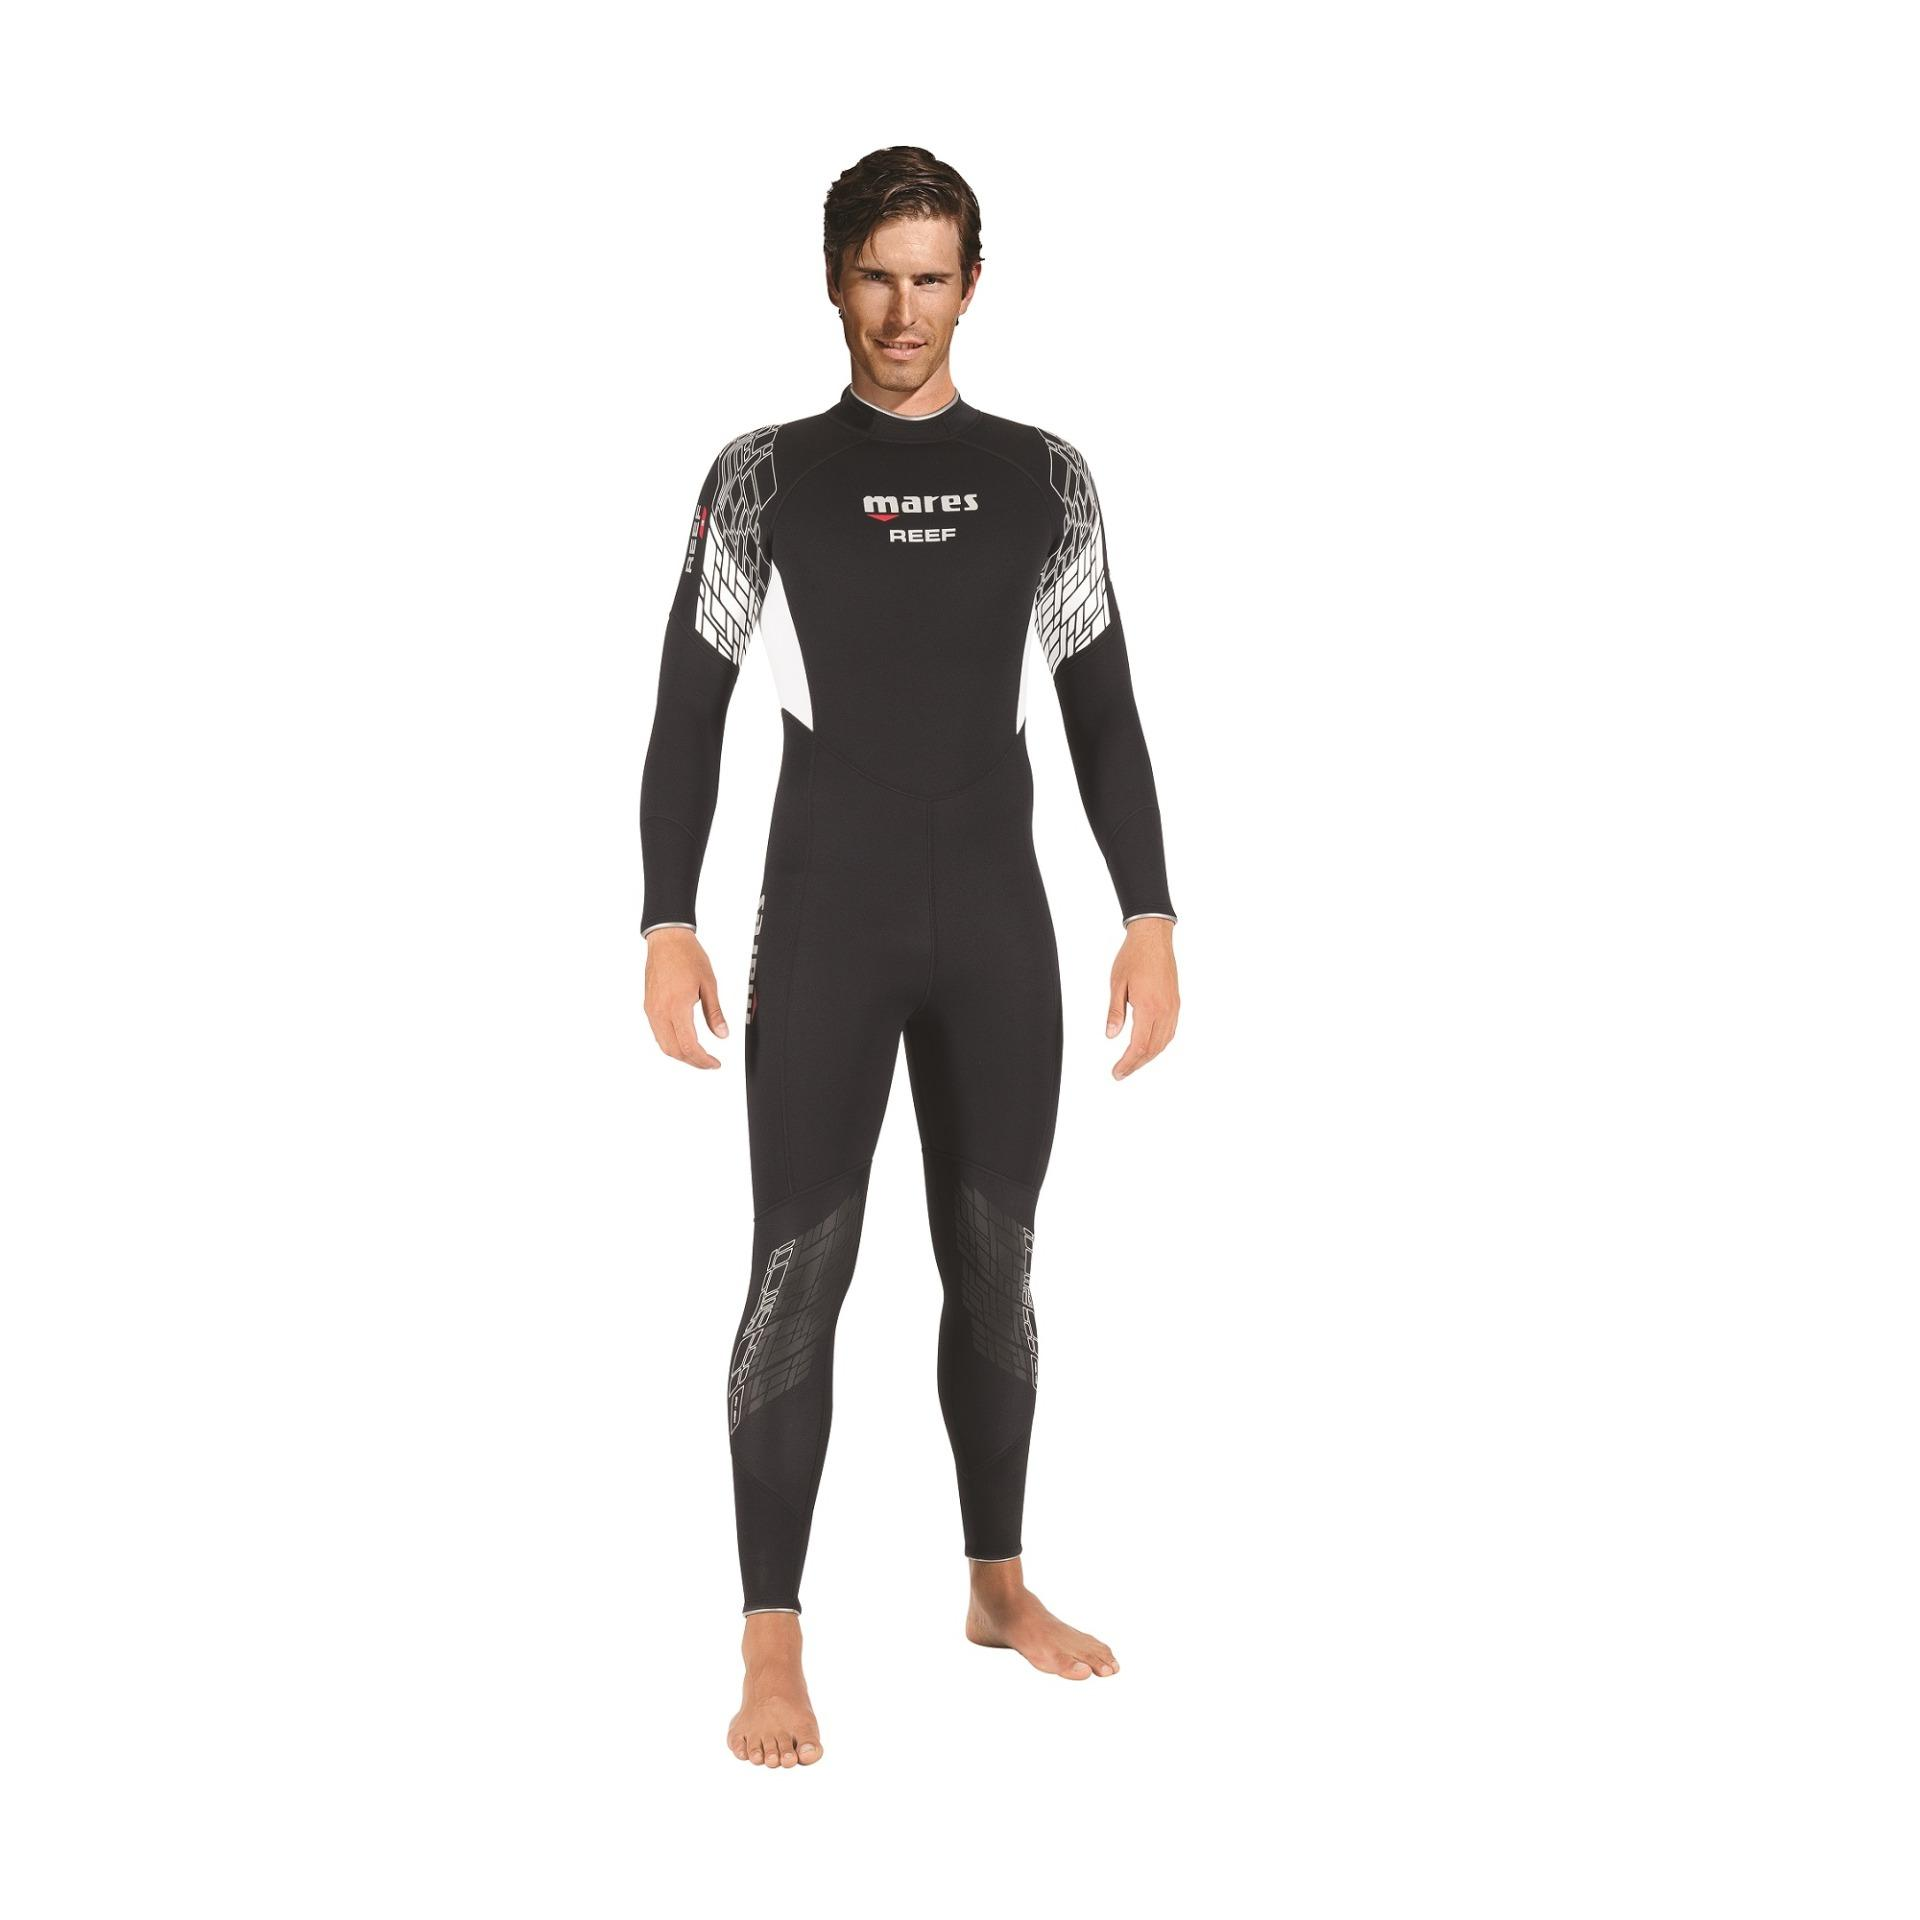 5d2edac4ab3f Diving Suit for sale - Dry Suit Online Deals & Prices in Philippines ...